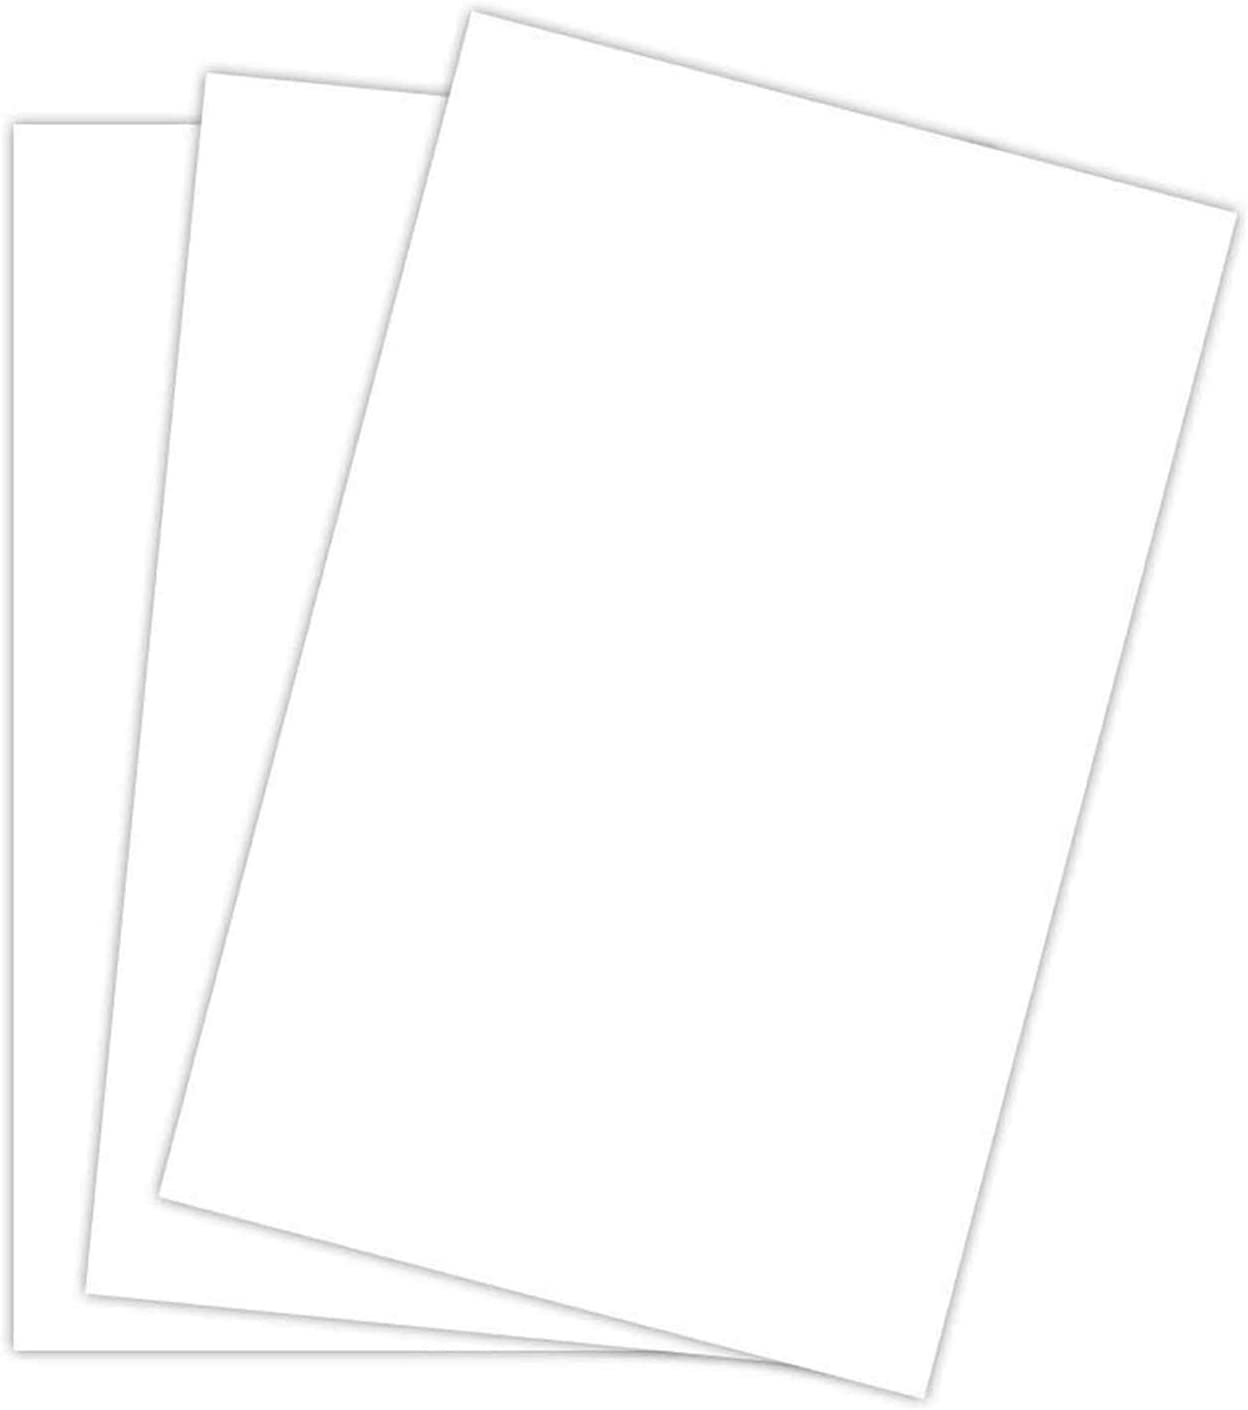 White Card Stock Paper   11 x 17 Inches   Tabloid or Ledger   10